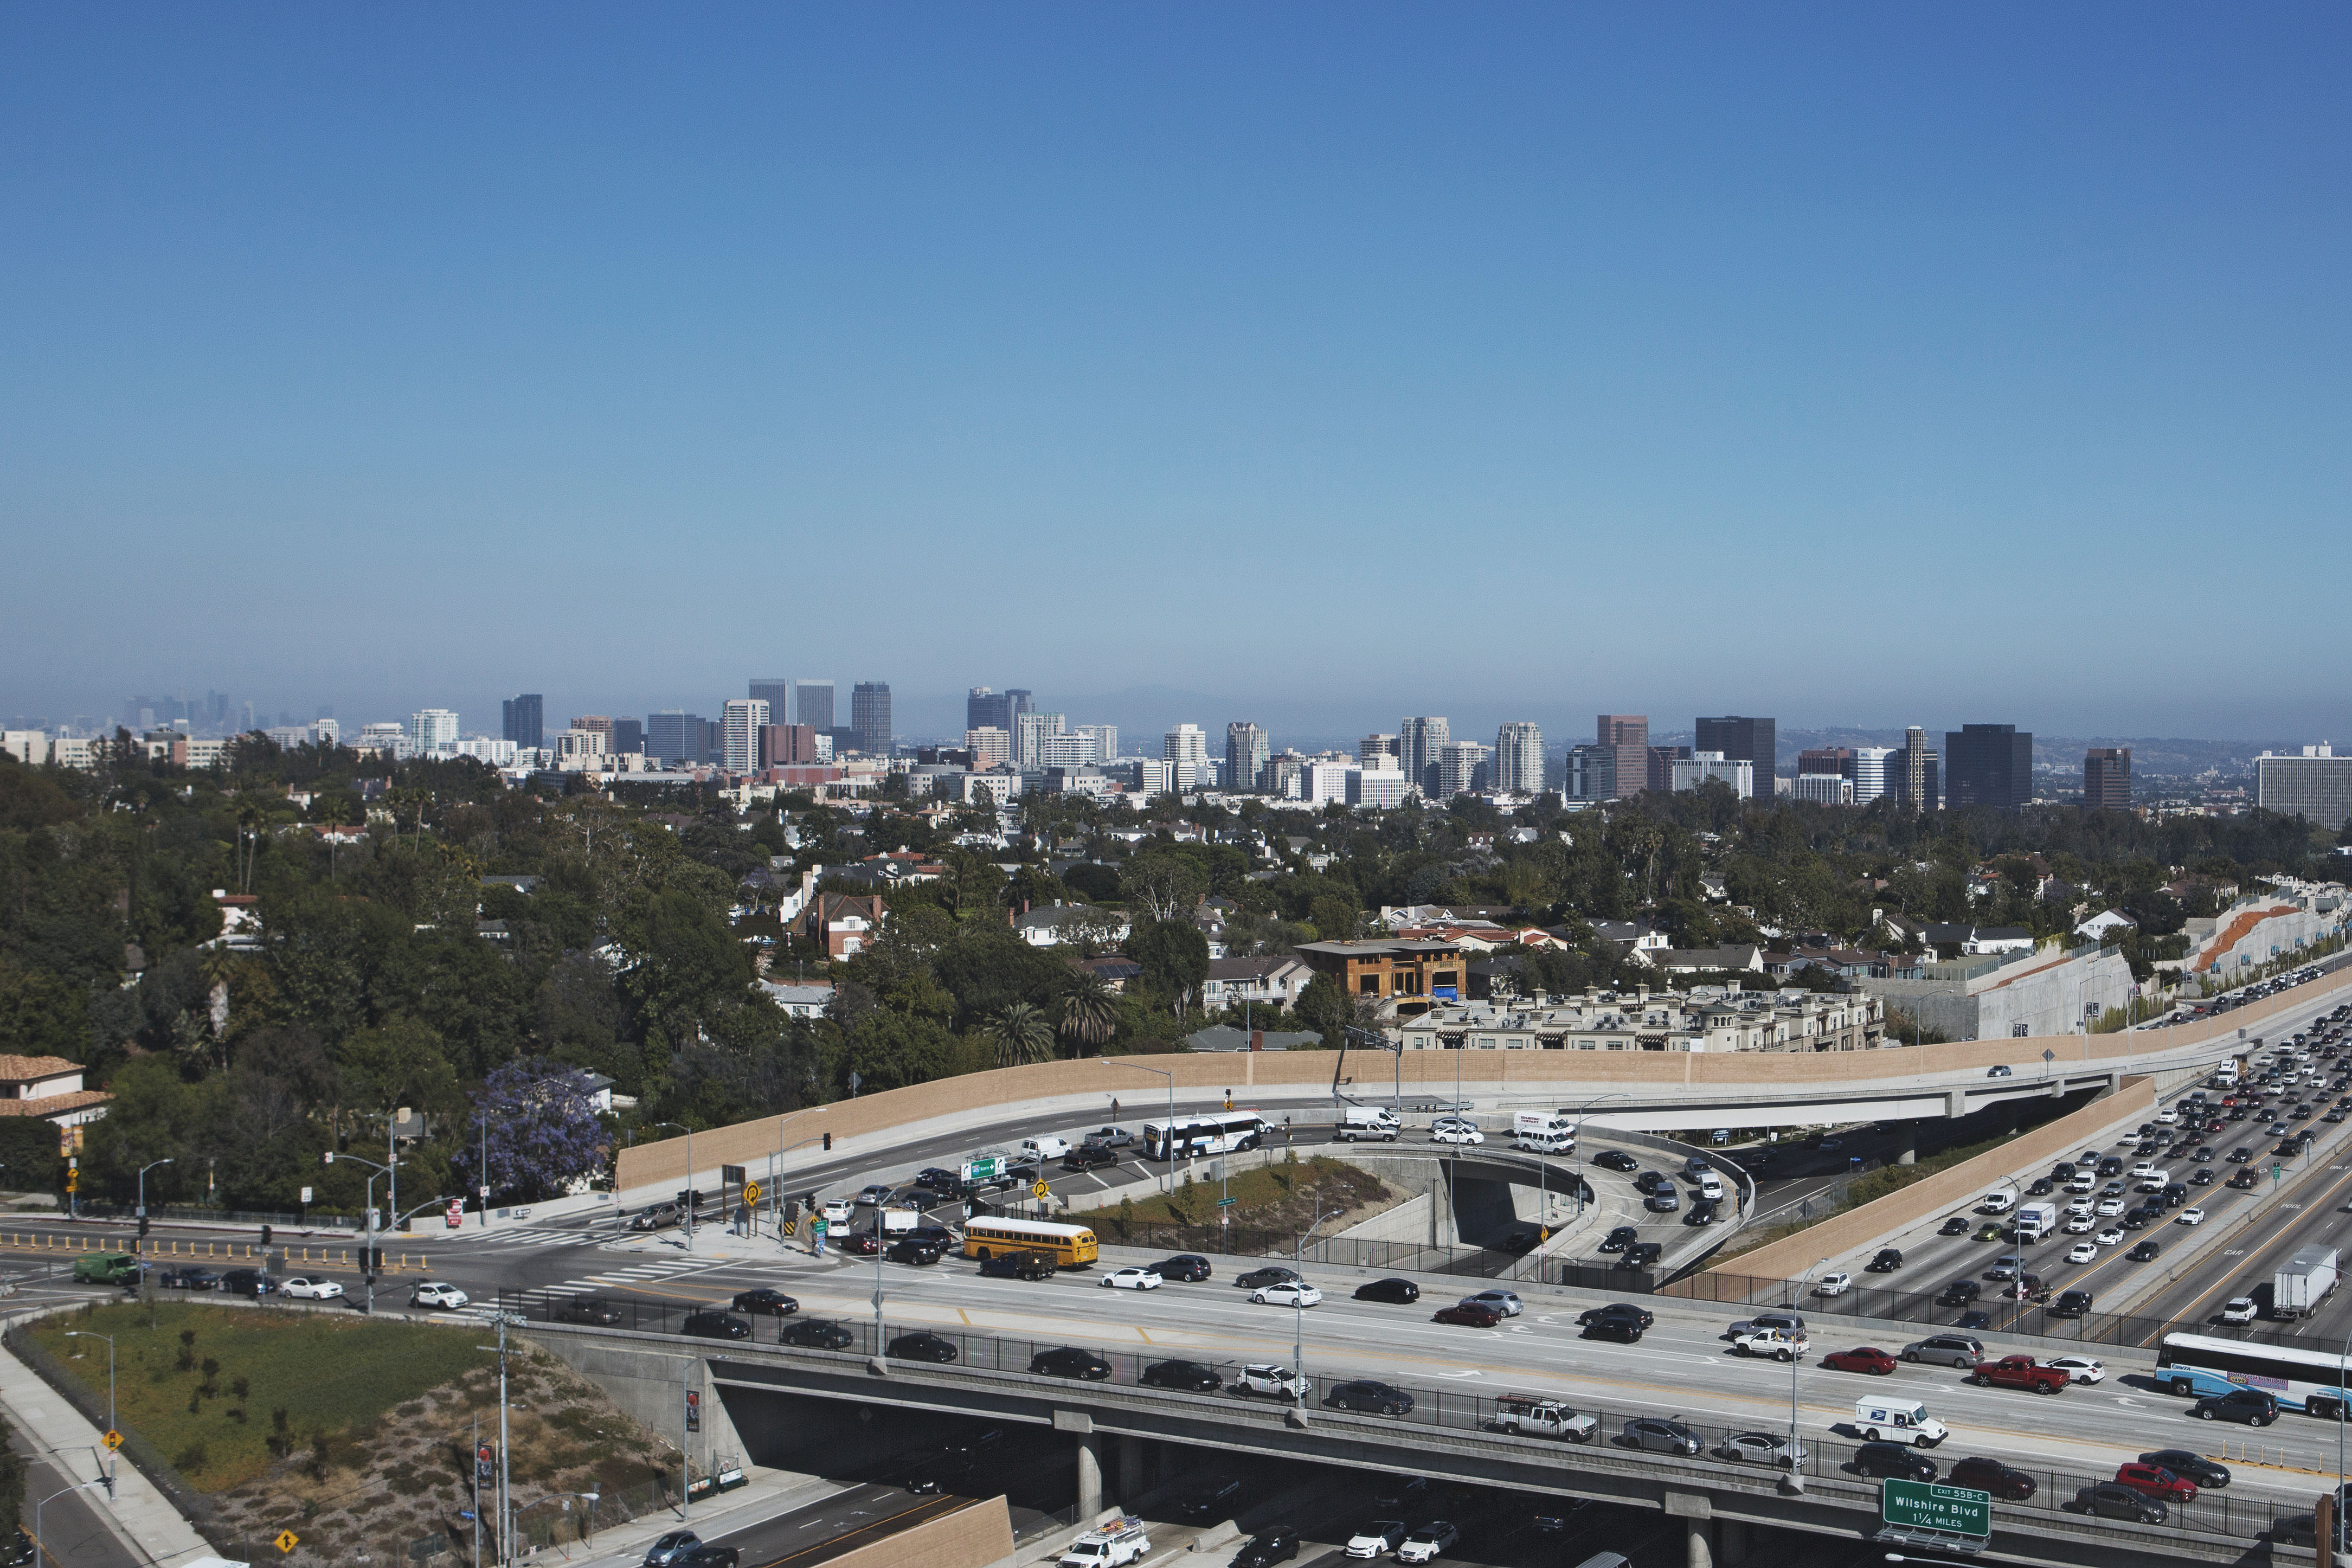 Hotels in LA: Stay at Angeleno